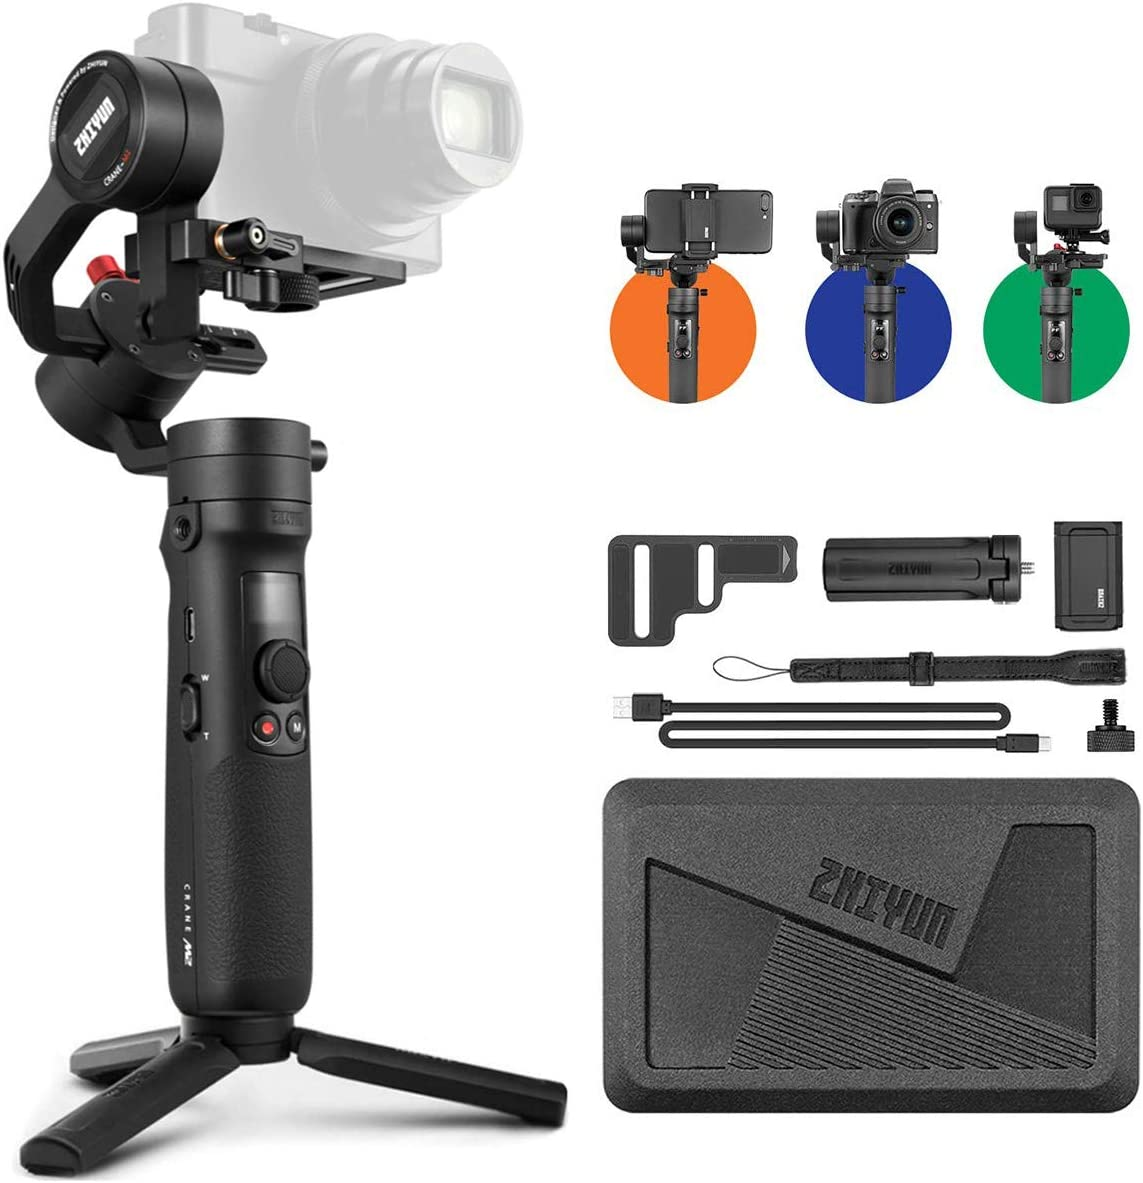 Zhiyun Crane M2 Crane-M2 Gimbal [Official Dealer], 3 Axis Handheld Gimbal for Mirrorless Cameras/Smartphone/Action Cameras for Sony A6000/A6300/A6400/A6500/Canon M6/G7 X Mark II, for GoPro Hero 7/6/5